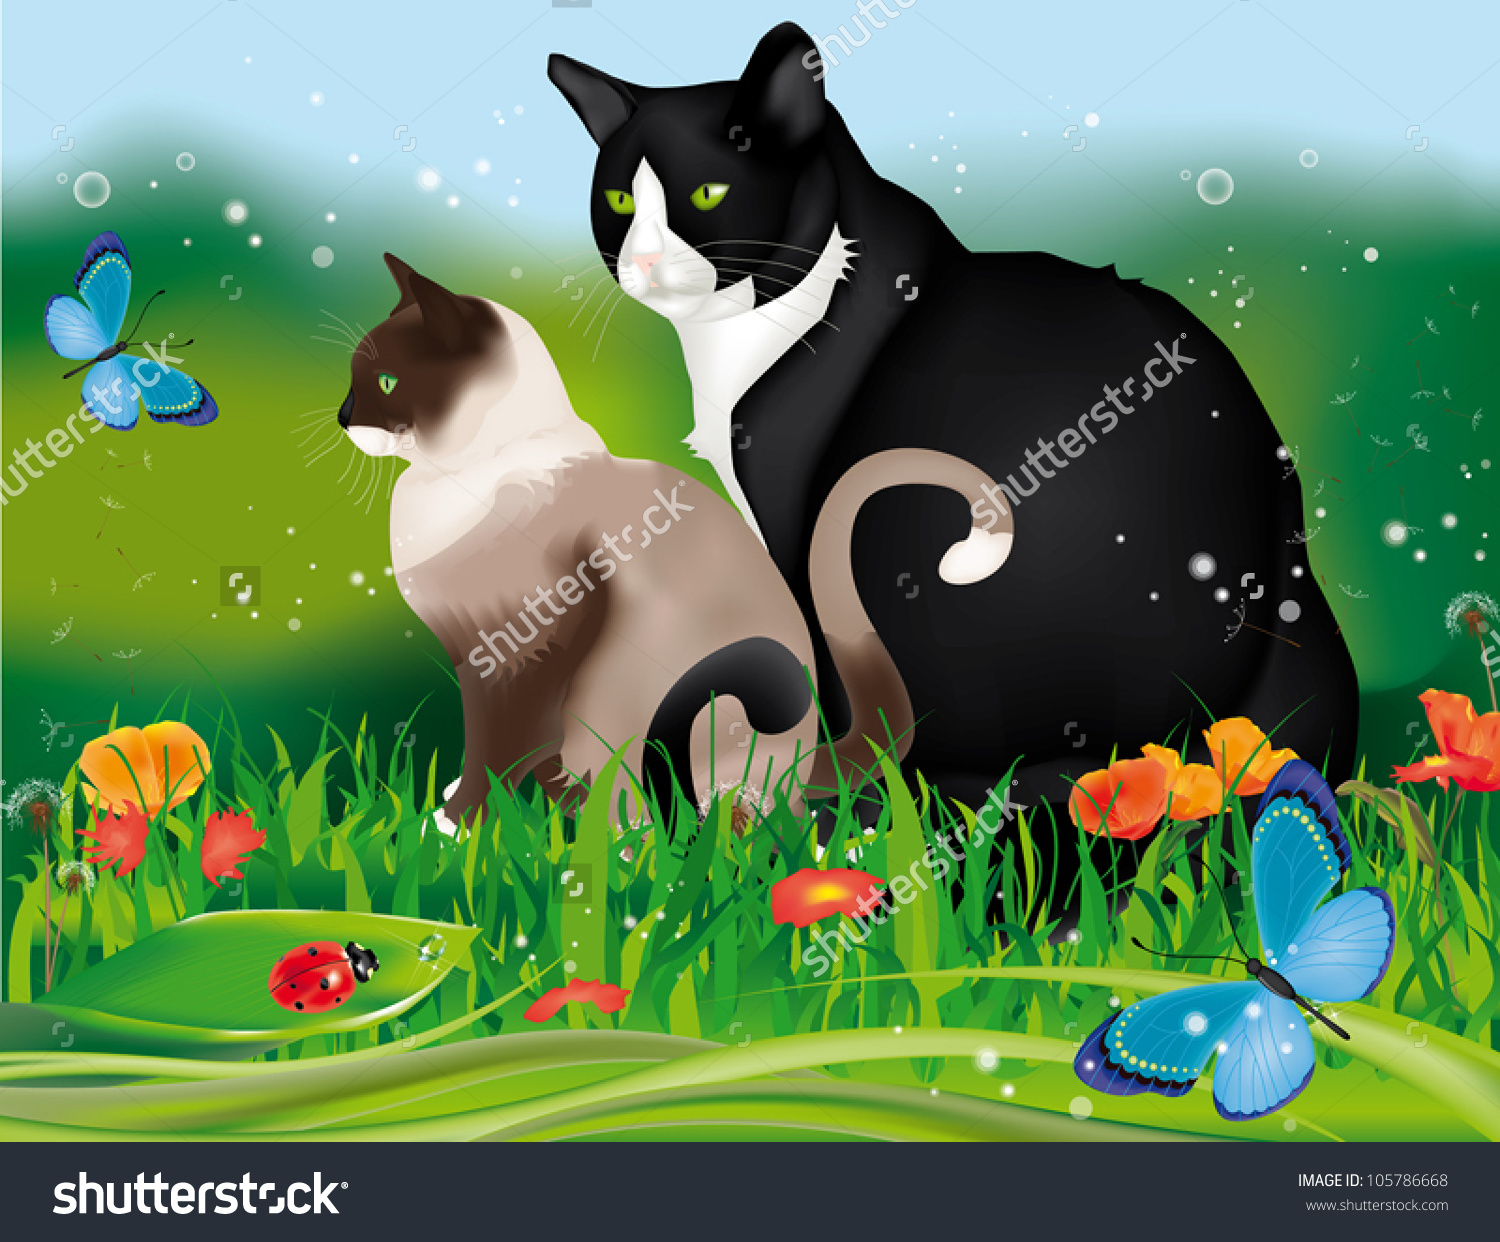 Lovely Two Cats In The Garden Among Grass, Flowers, Ladybug And.